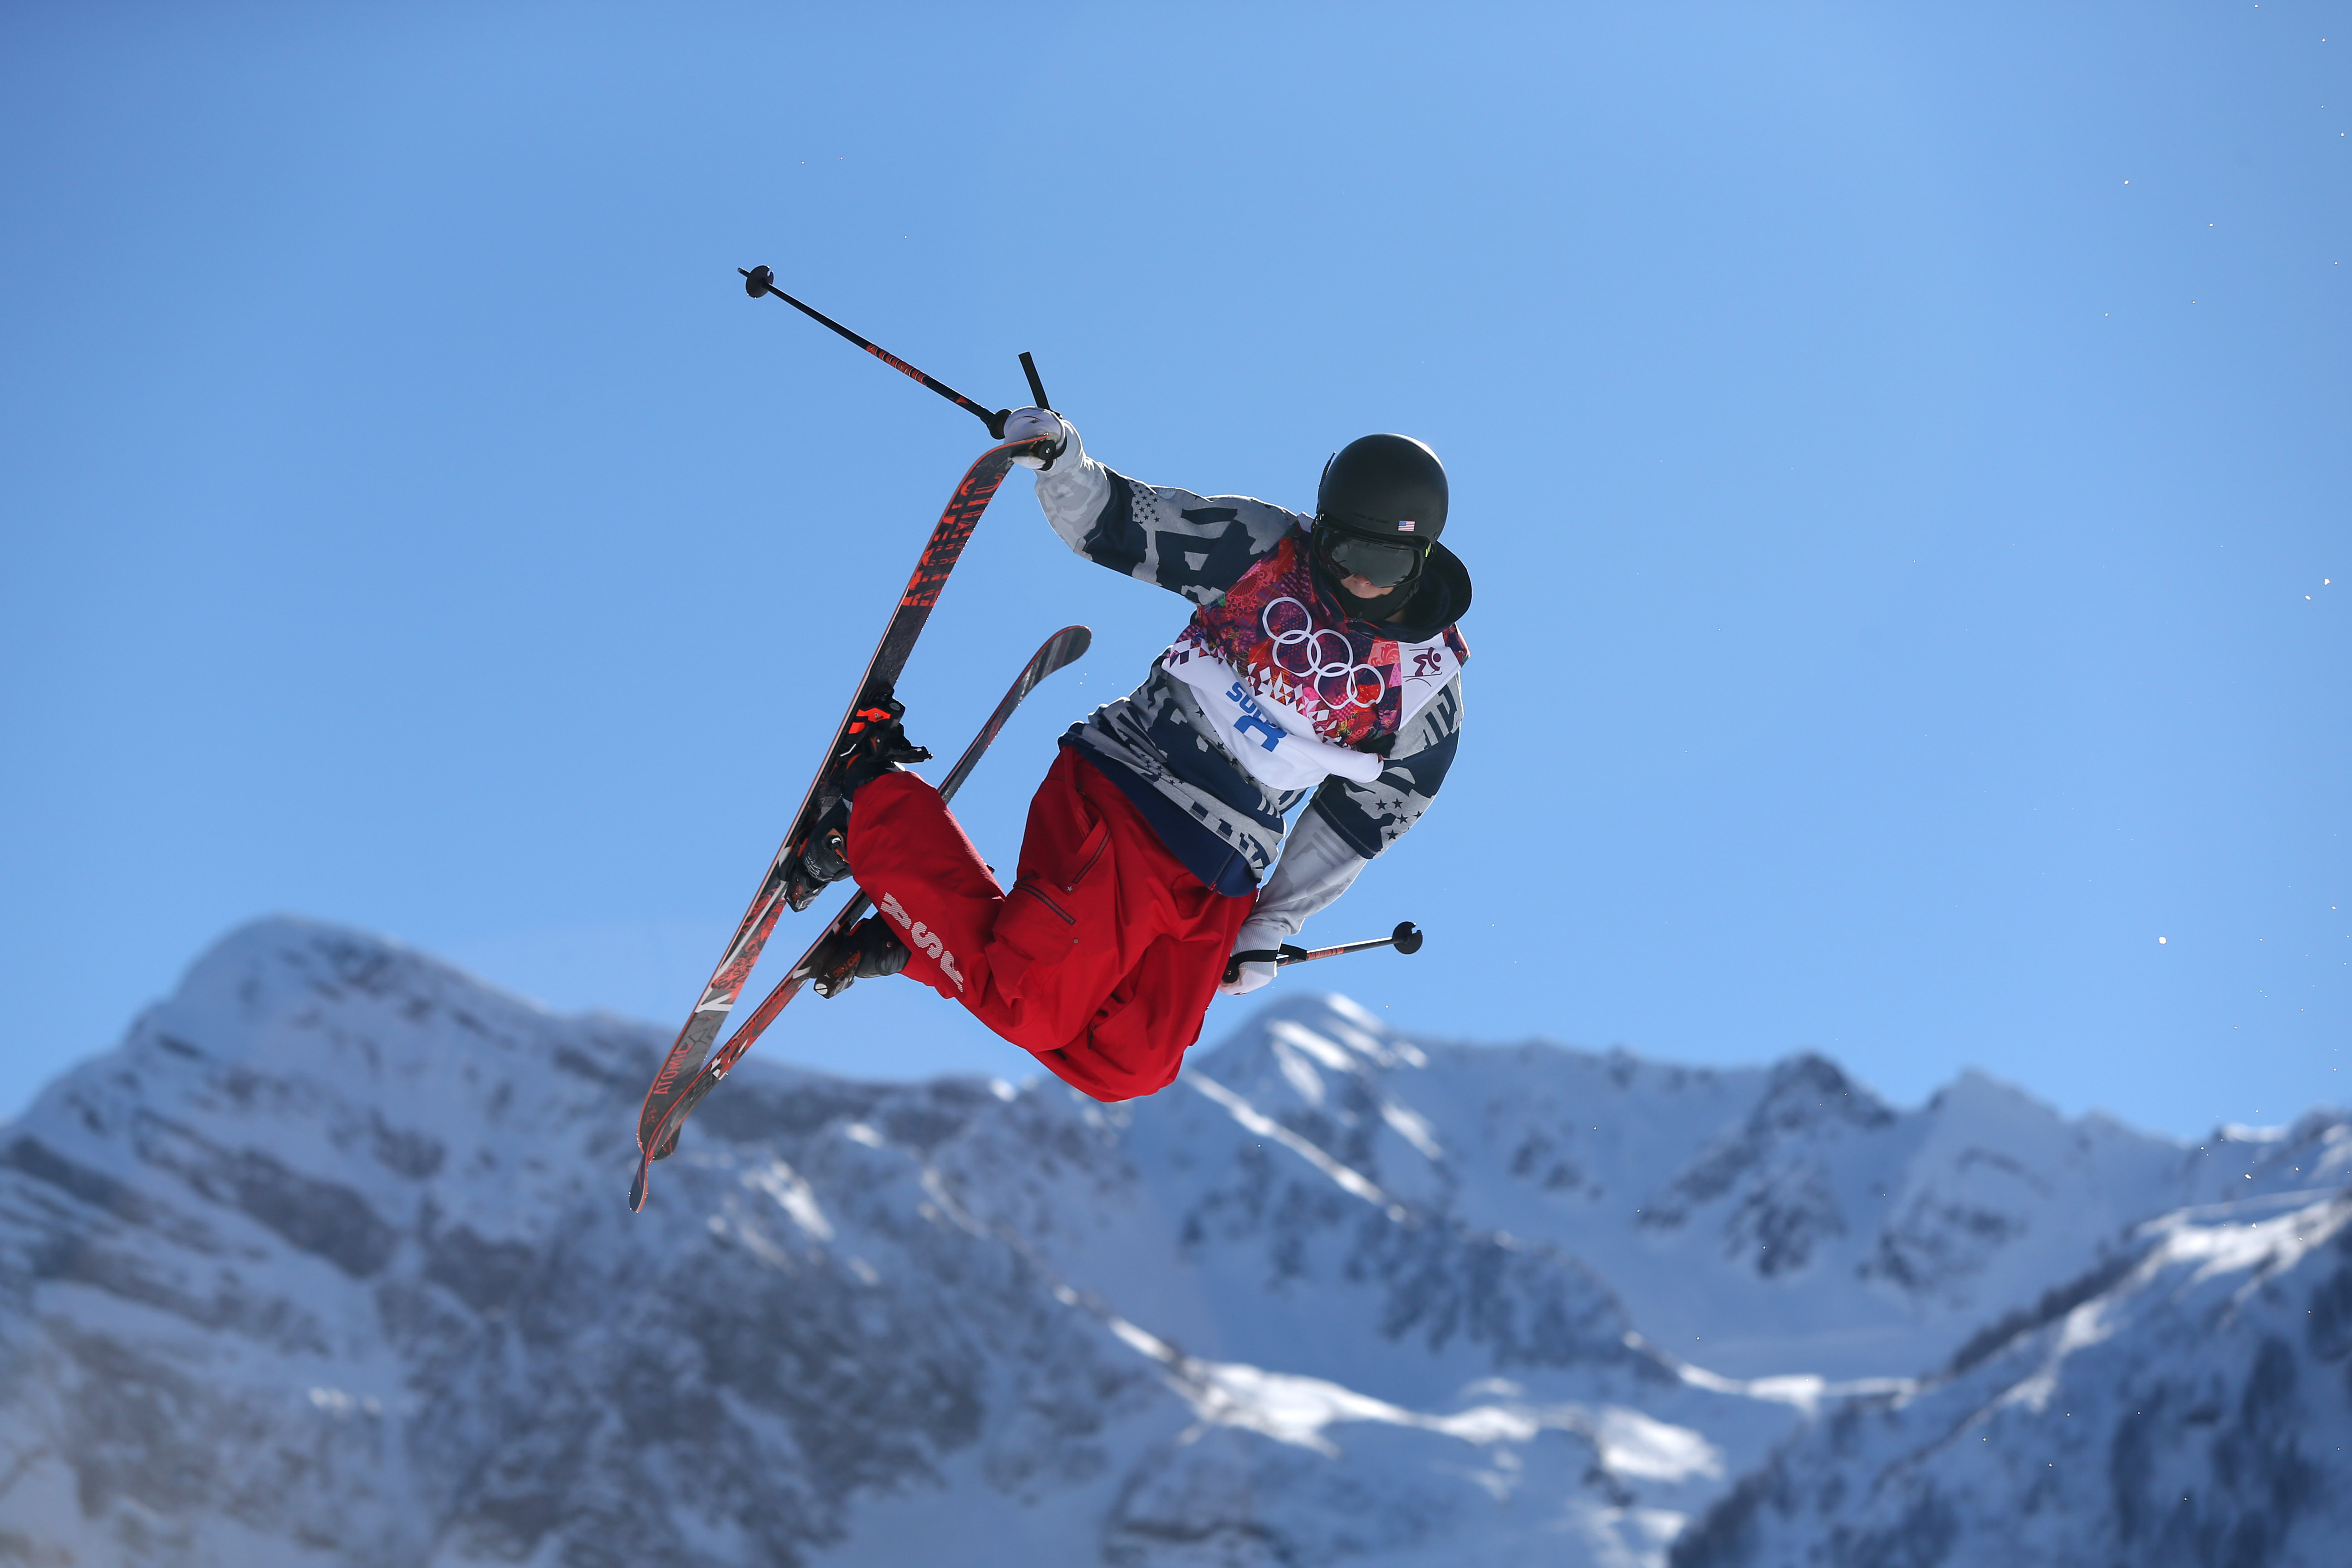 Gus Kenworthy of the United States competes in the men's ski slopestyle final to win the silver medal at the Rosa Khutor Extreme Park, at the 2014 Winter Olympics, Thursday, Feb. 13, 2014, in Krasnaya Polyana, Russia. (AP Photo/Sergei Grits)